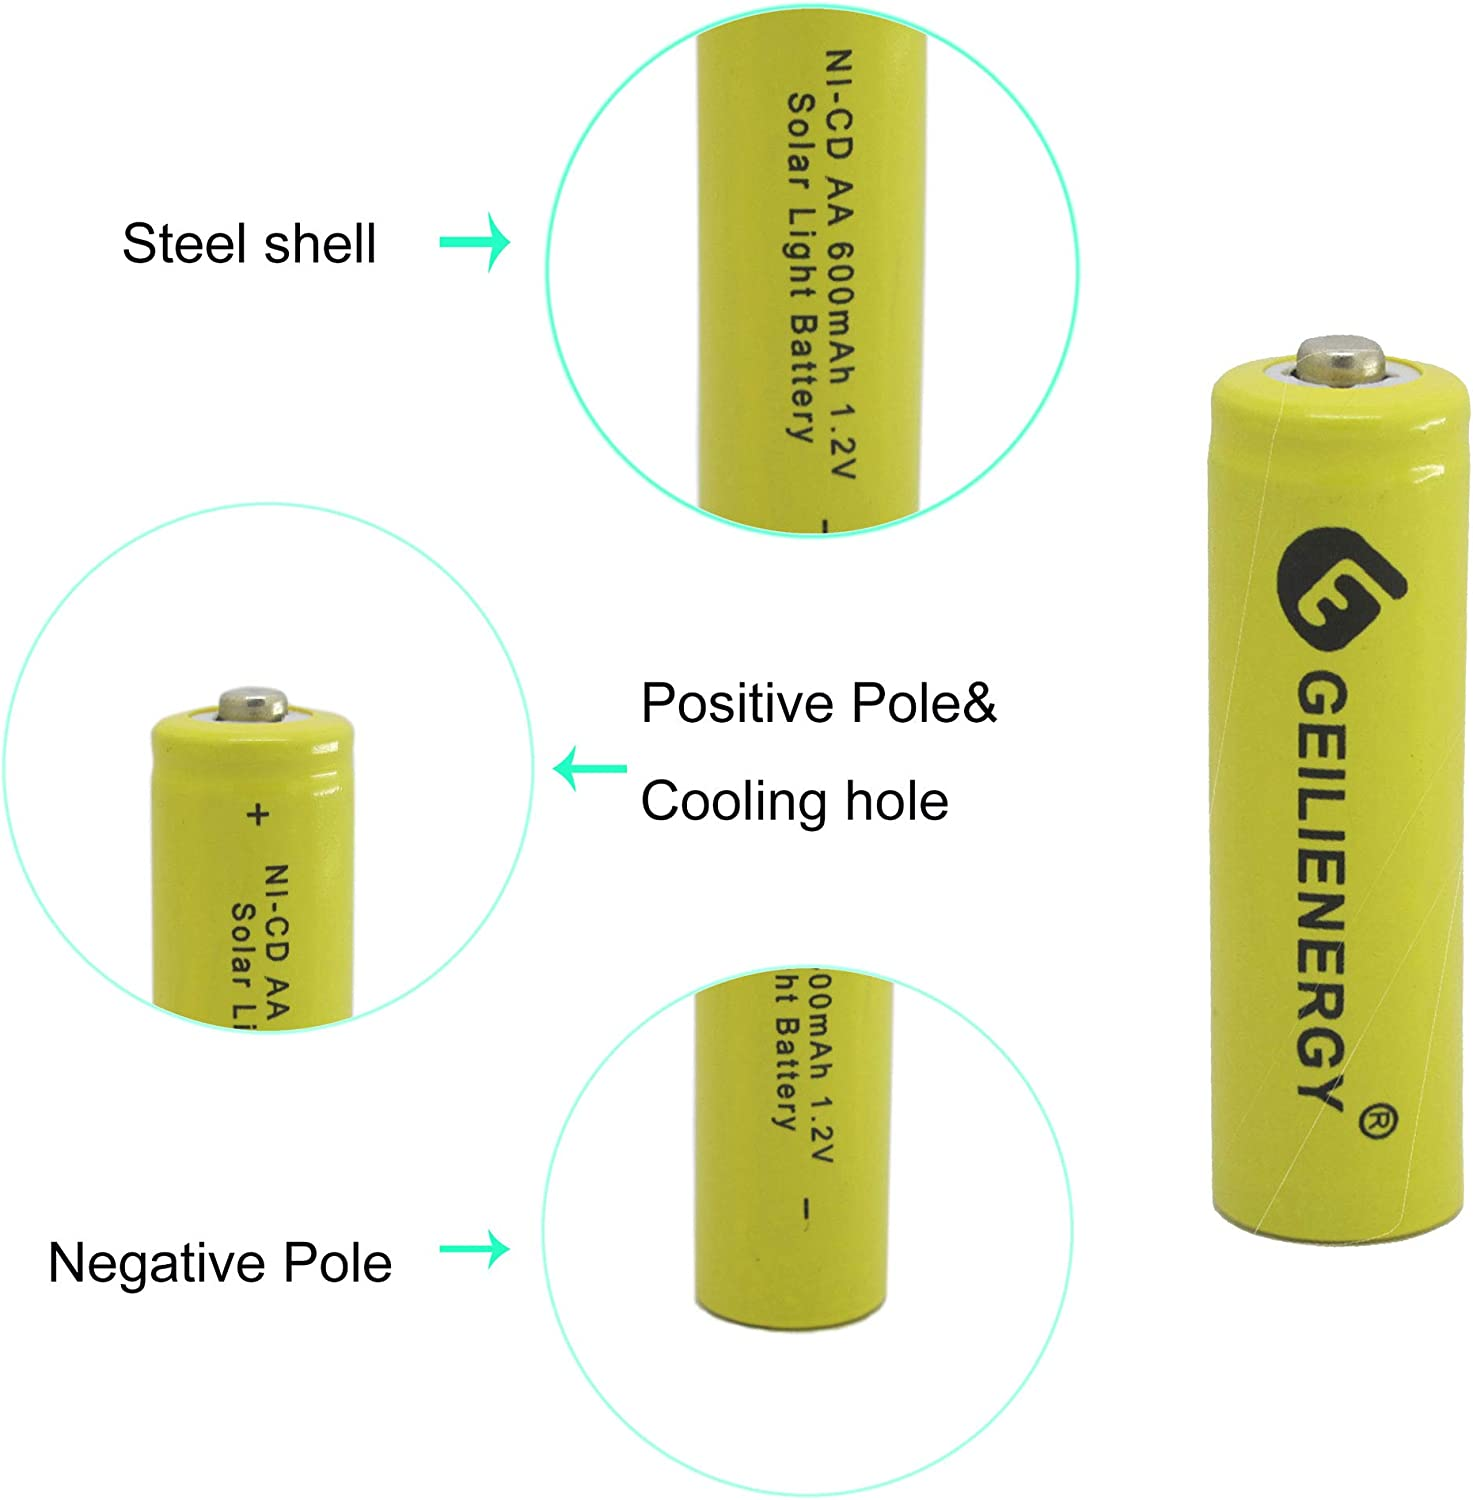 GEILIENERGY 1.2v AA NiCd 600mAh Rechargeable Battery for Solar Light Lamp Green Color Pack of 12pcs AA NI-CD Batteries